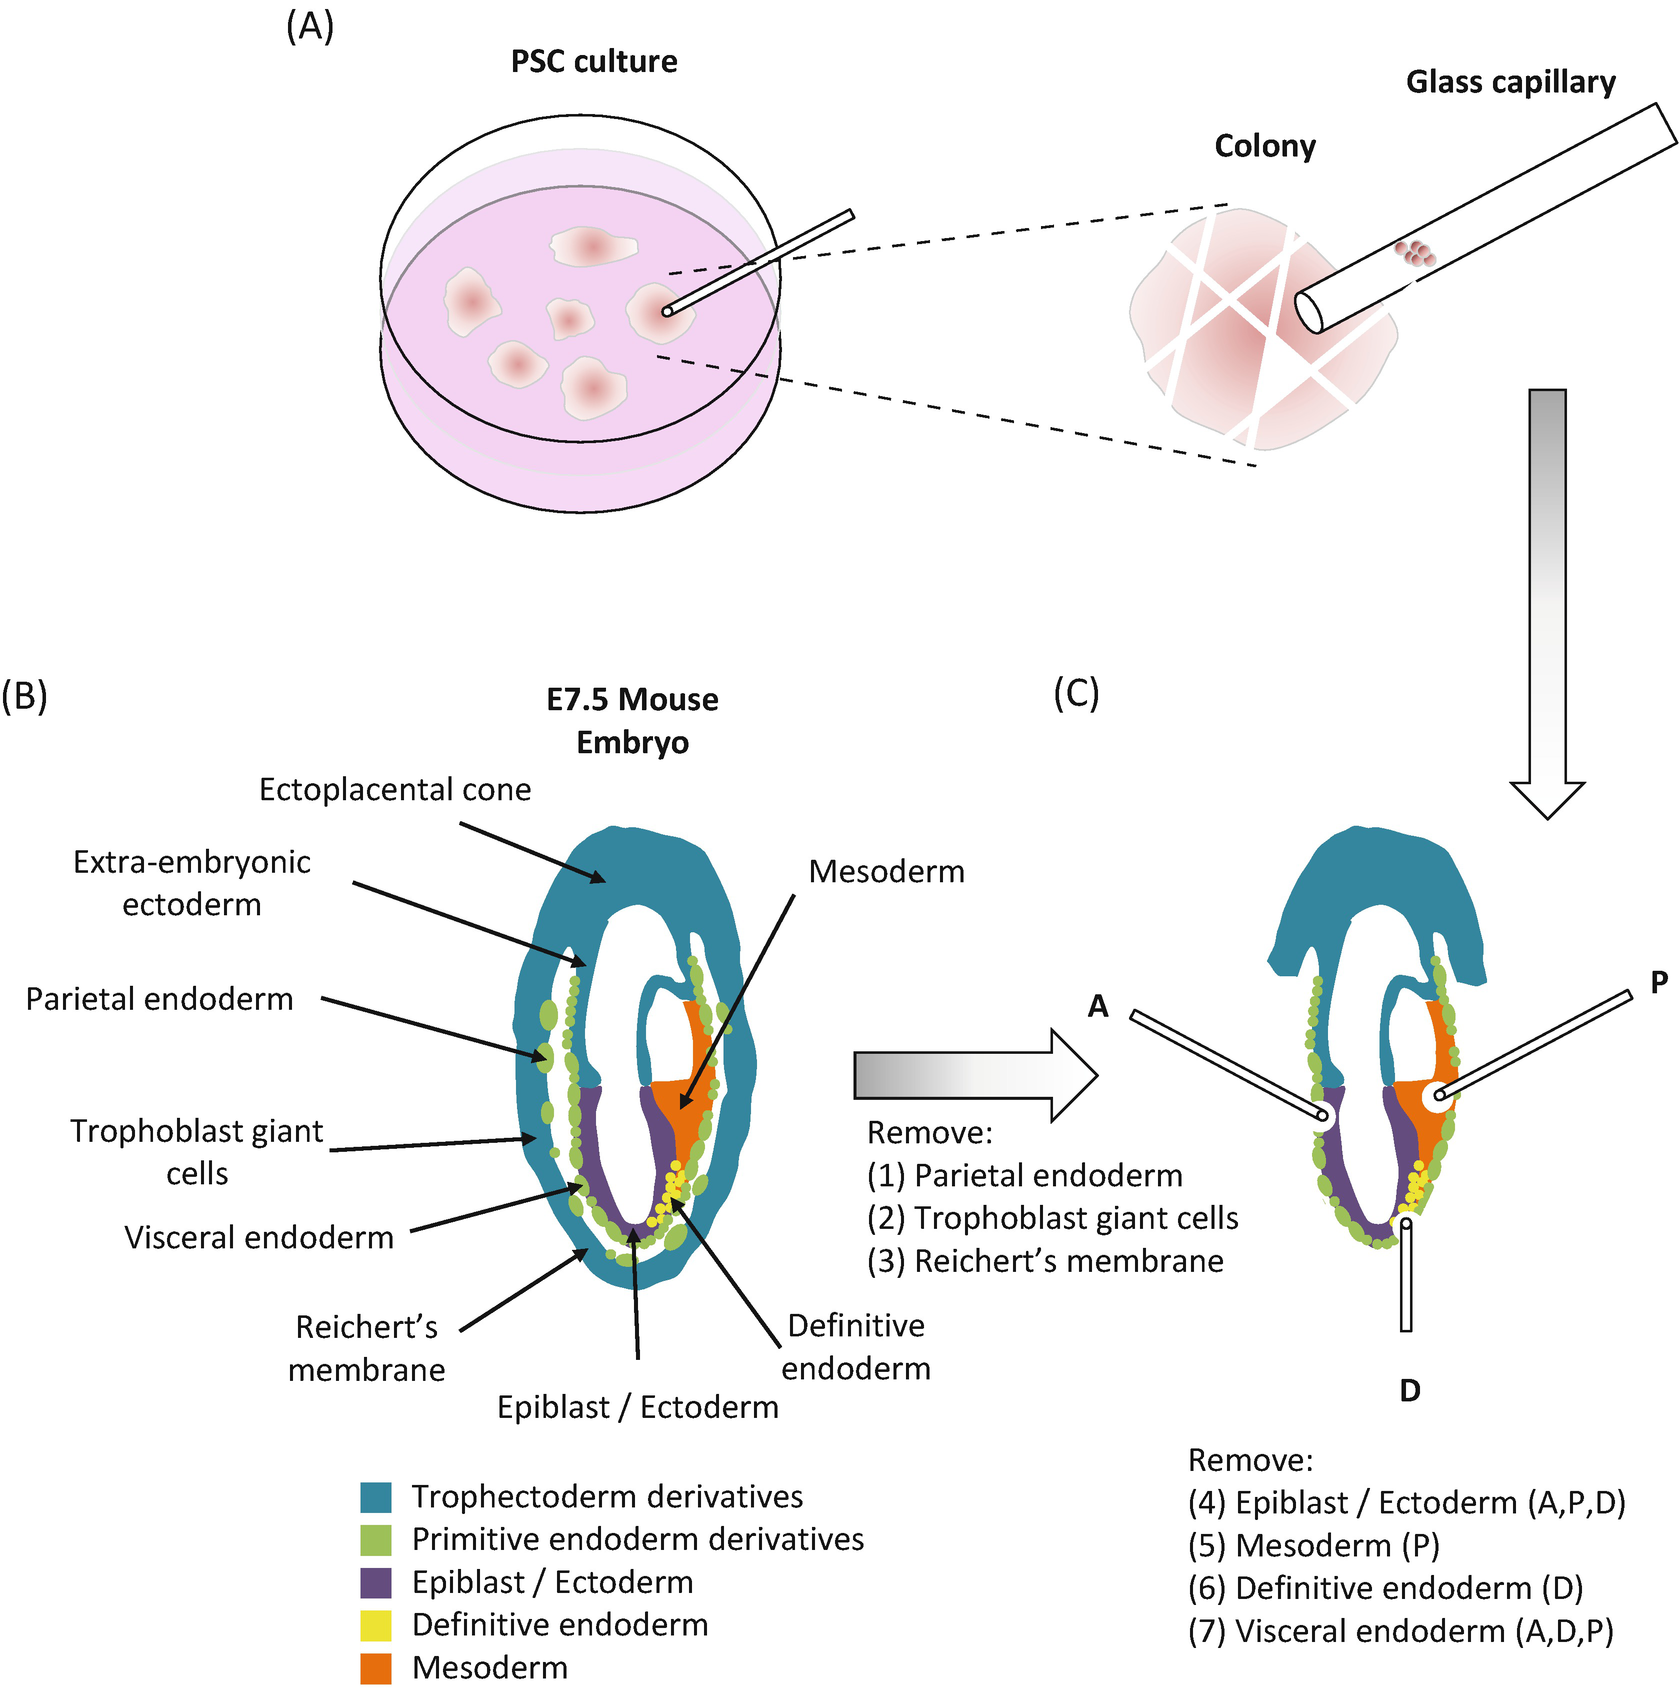 Embryonic Chimeras with Human Pluripotent Stem Cells | SpringerLink